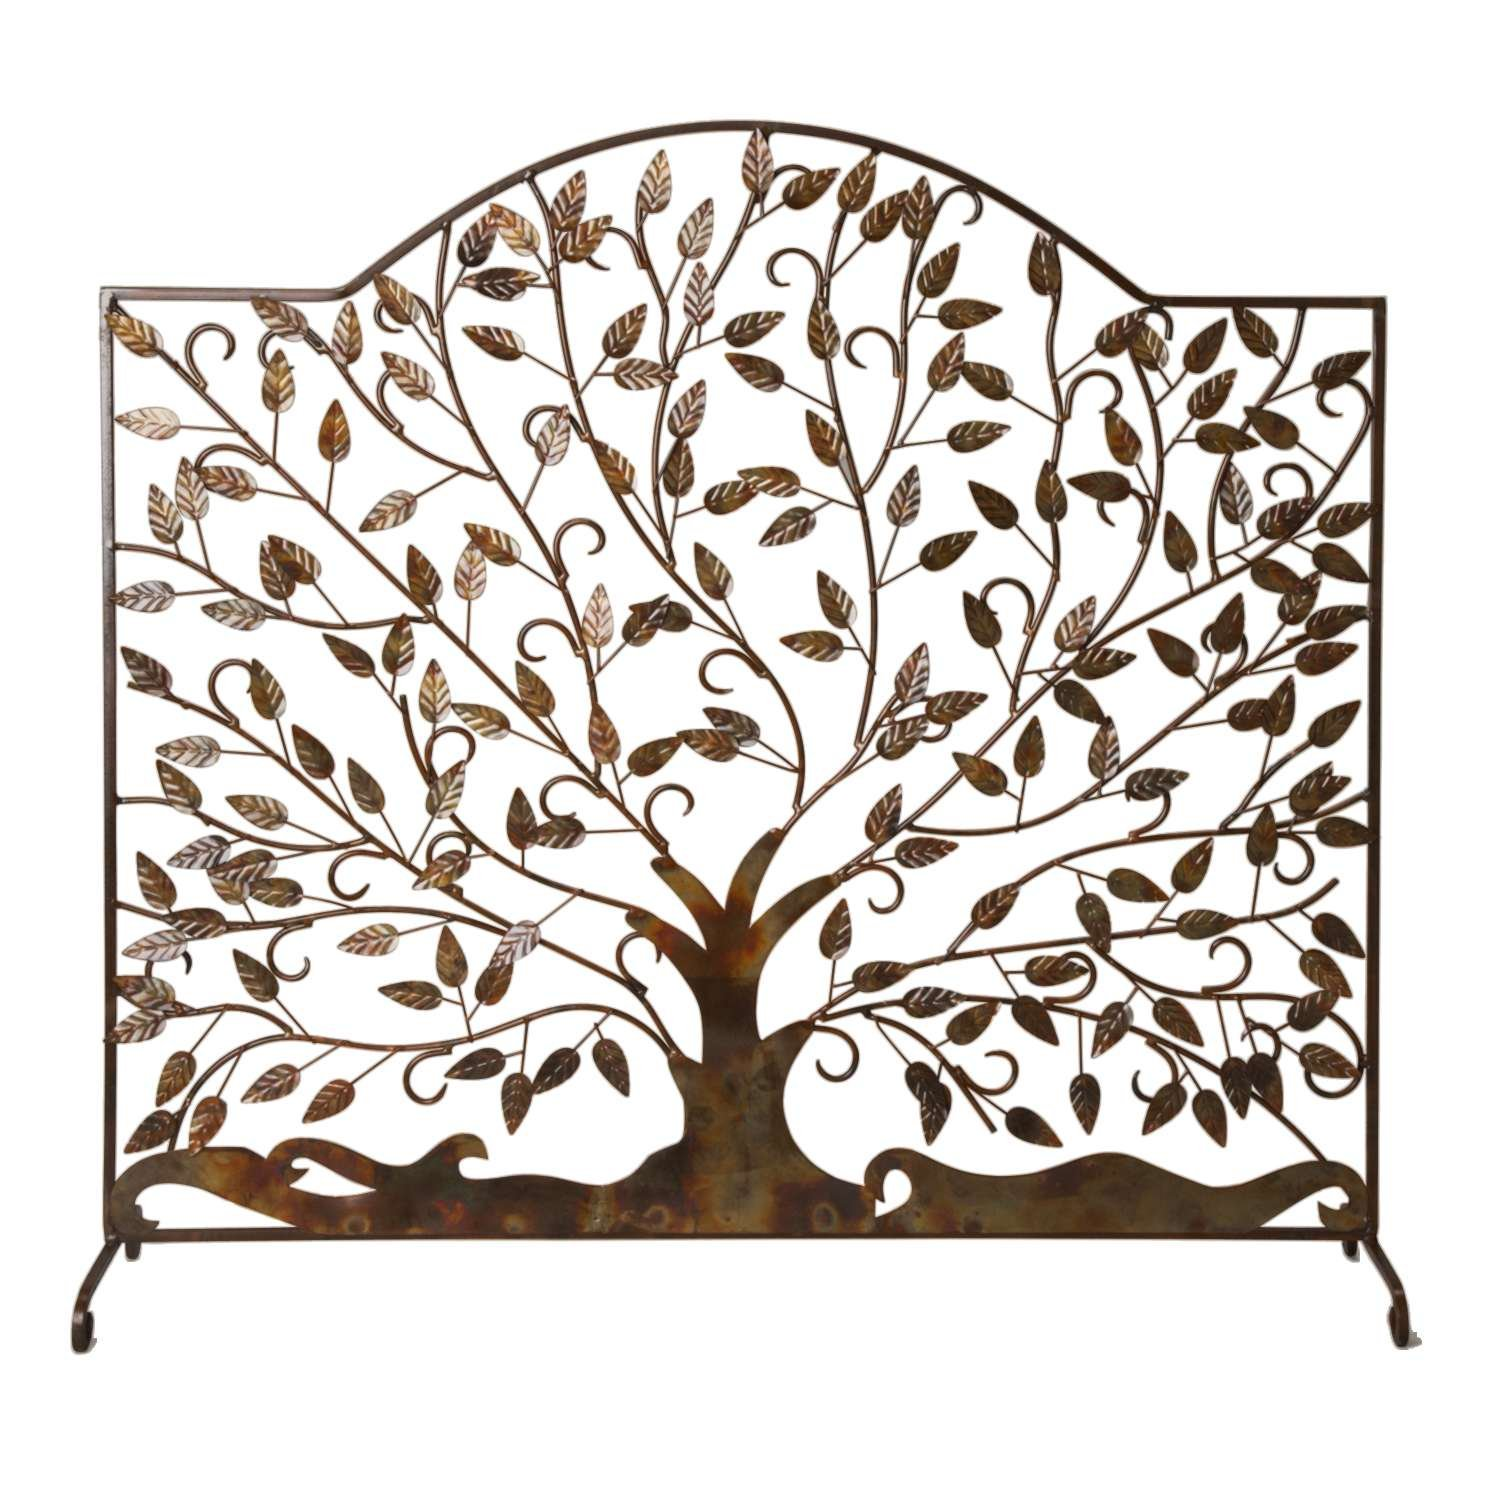 Handcrafted Decorative Fireplace Iron Screen, Tree Design 35''x33'' 'Leaves of Flame Fire Screen'